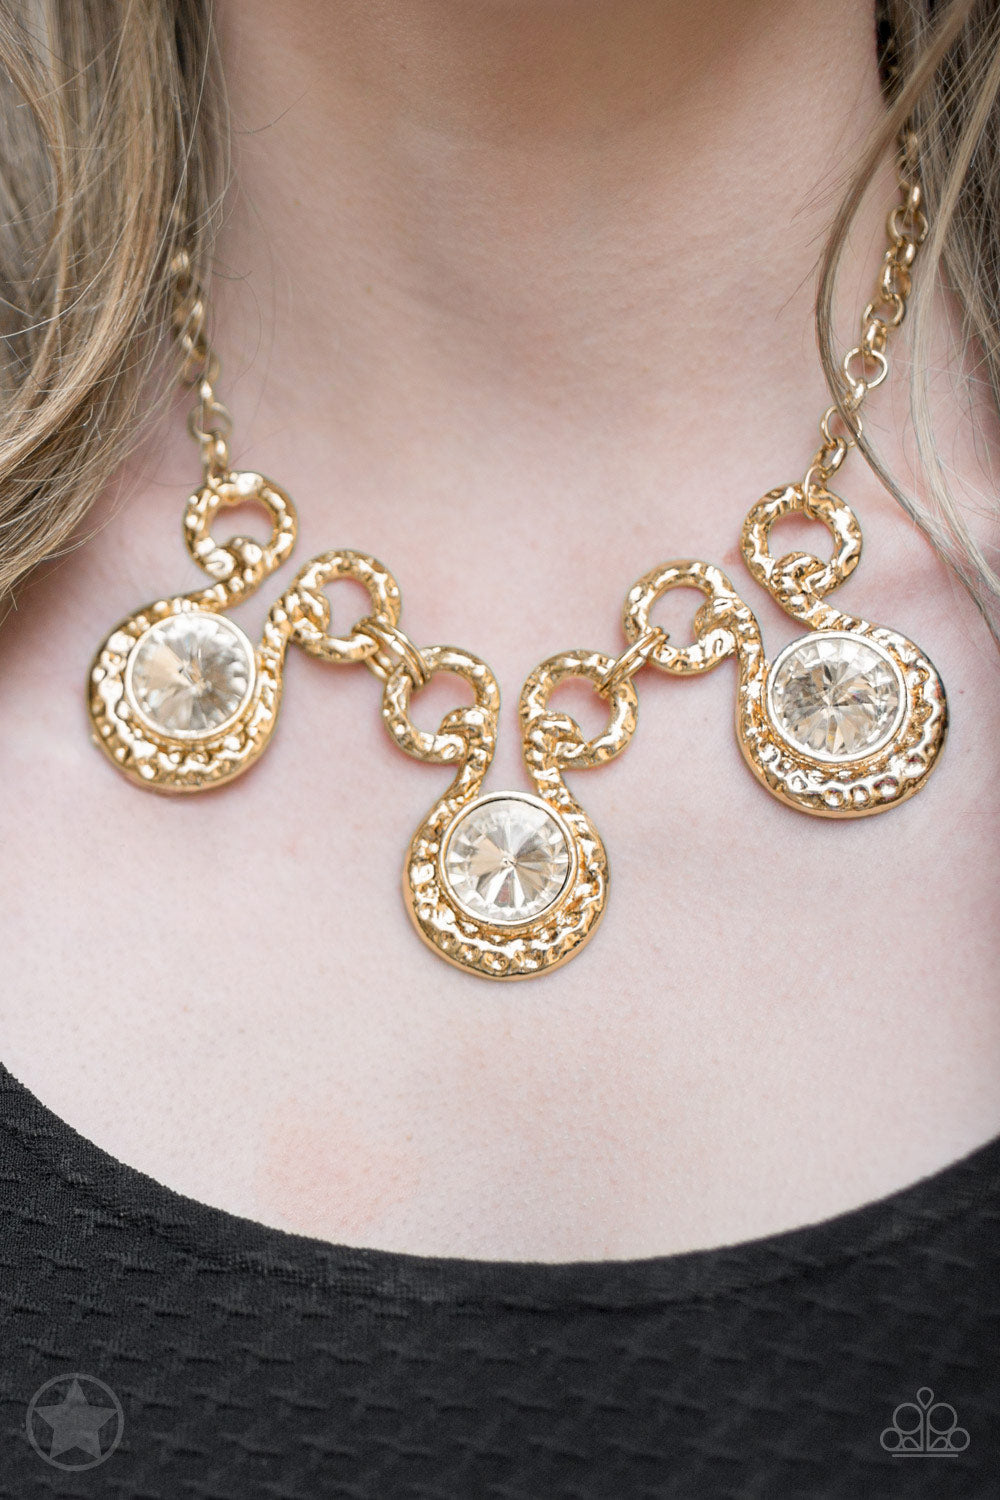 Paparazzi Accessories - Hypnotized - Gold Necklace